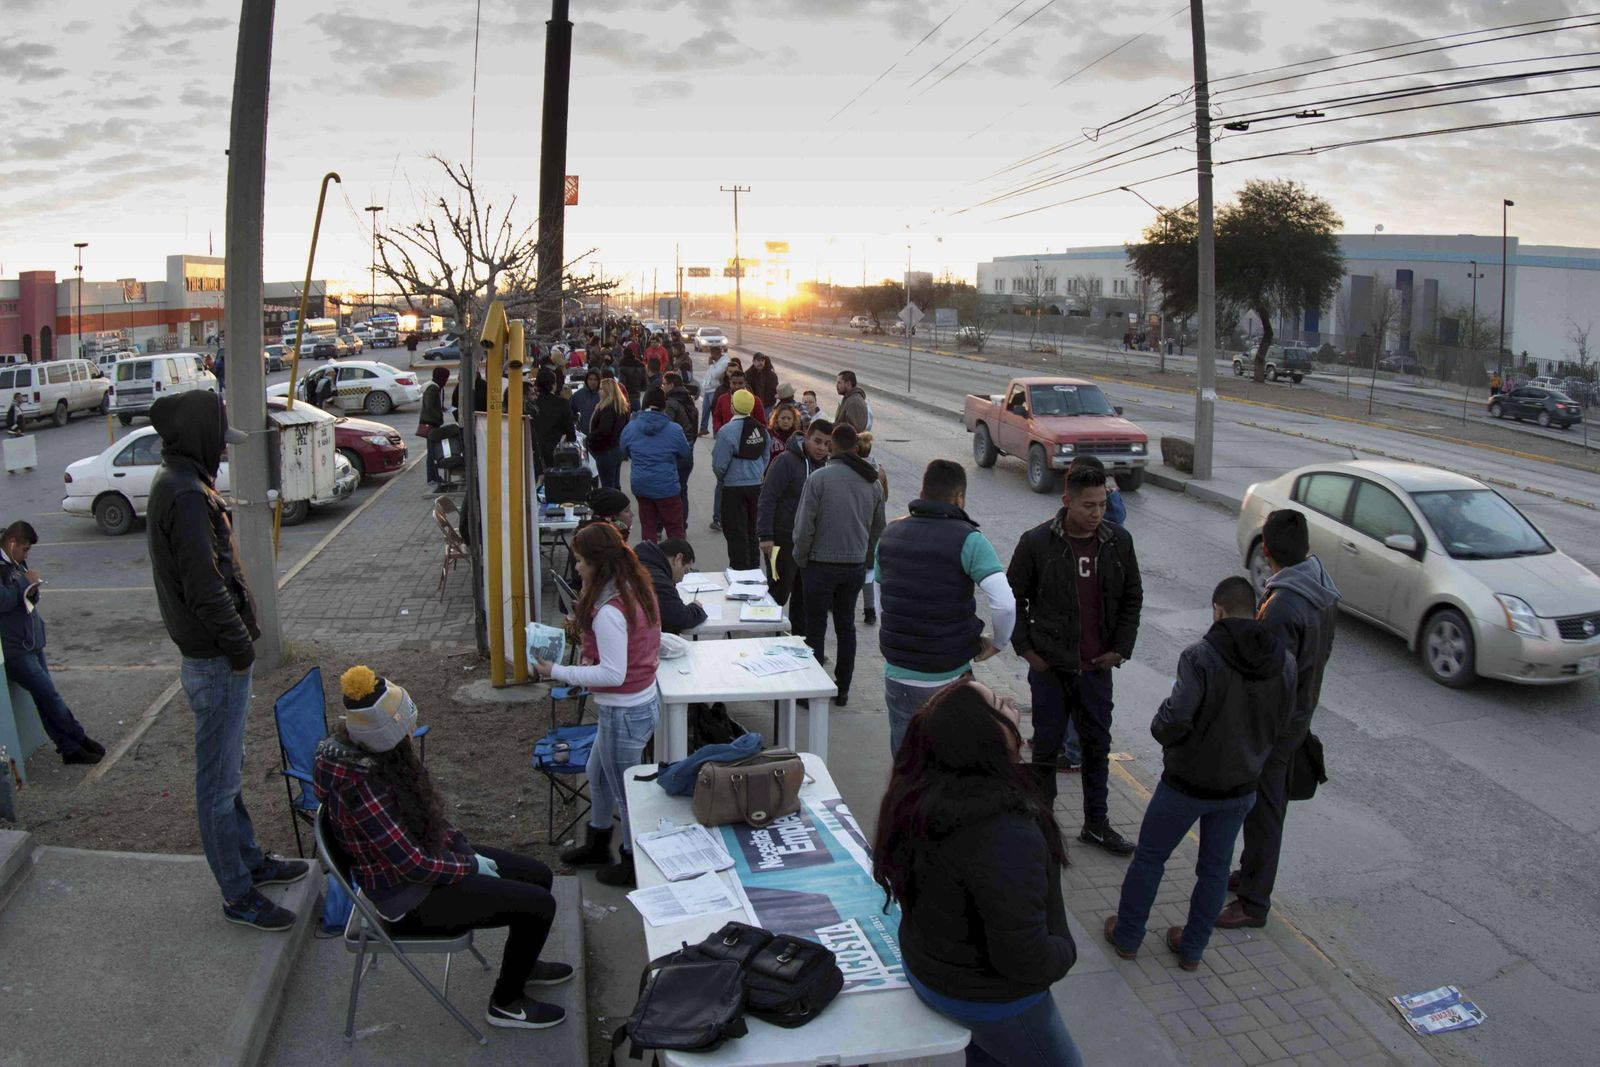 People register for open jobs in a so called bonded factory in Ciudad Juarez Mexico 17 January 201